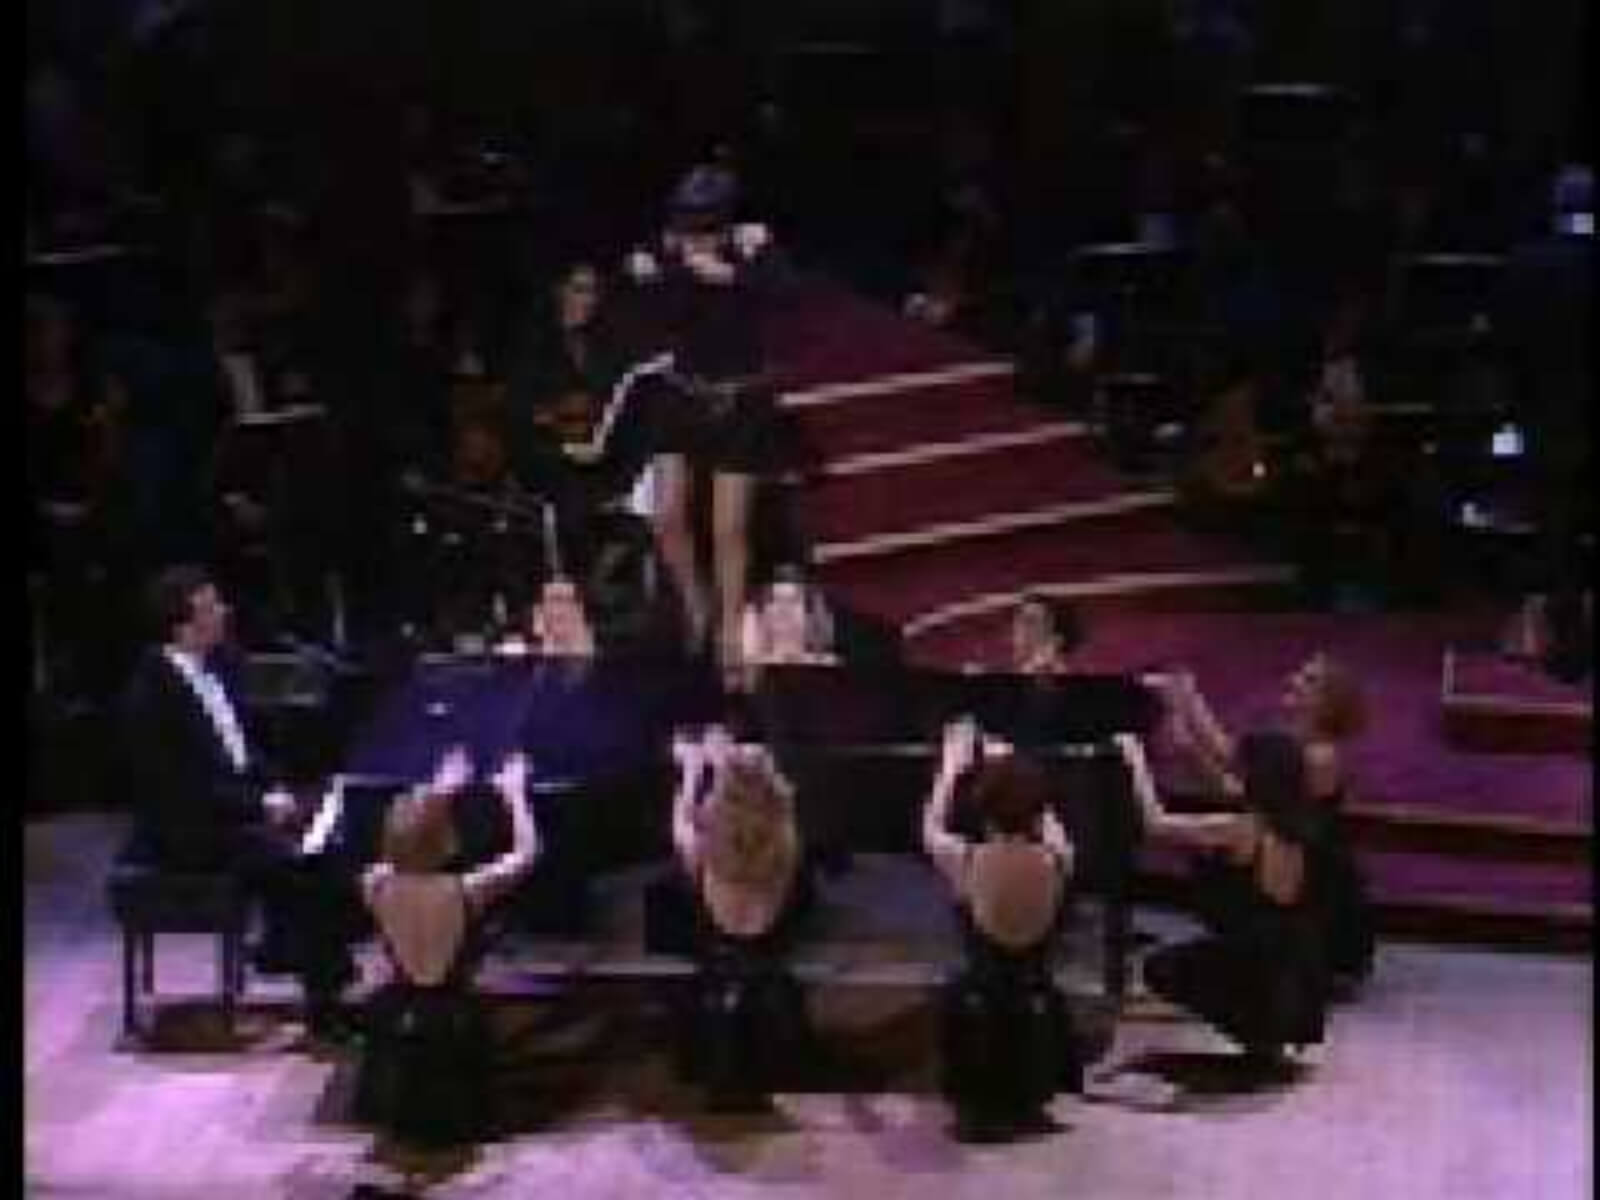 """Liza Minnelli, in a beautiful black dress on top of a grand piano, sings and dances for the audience. She is with the female ensemble performing """"Back in Business""""."""